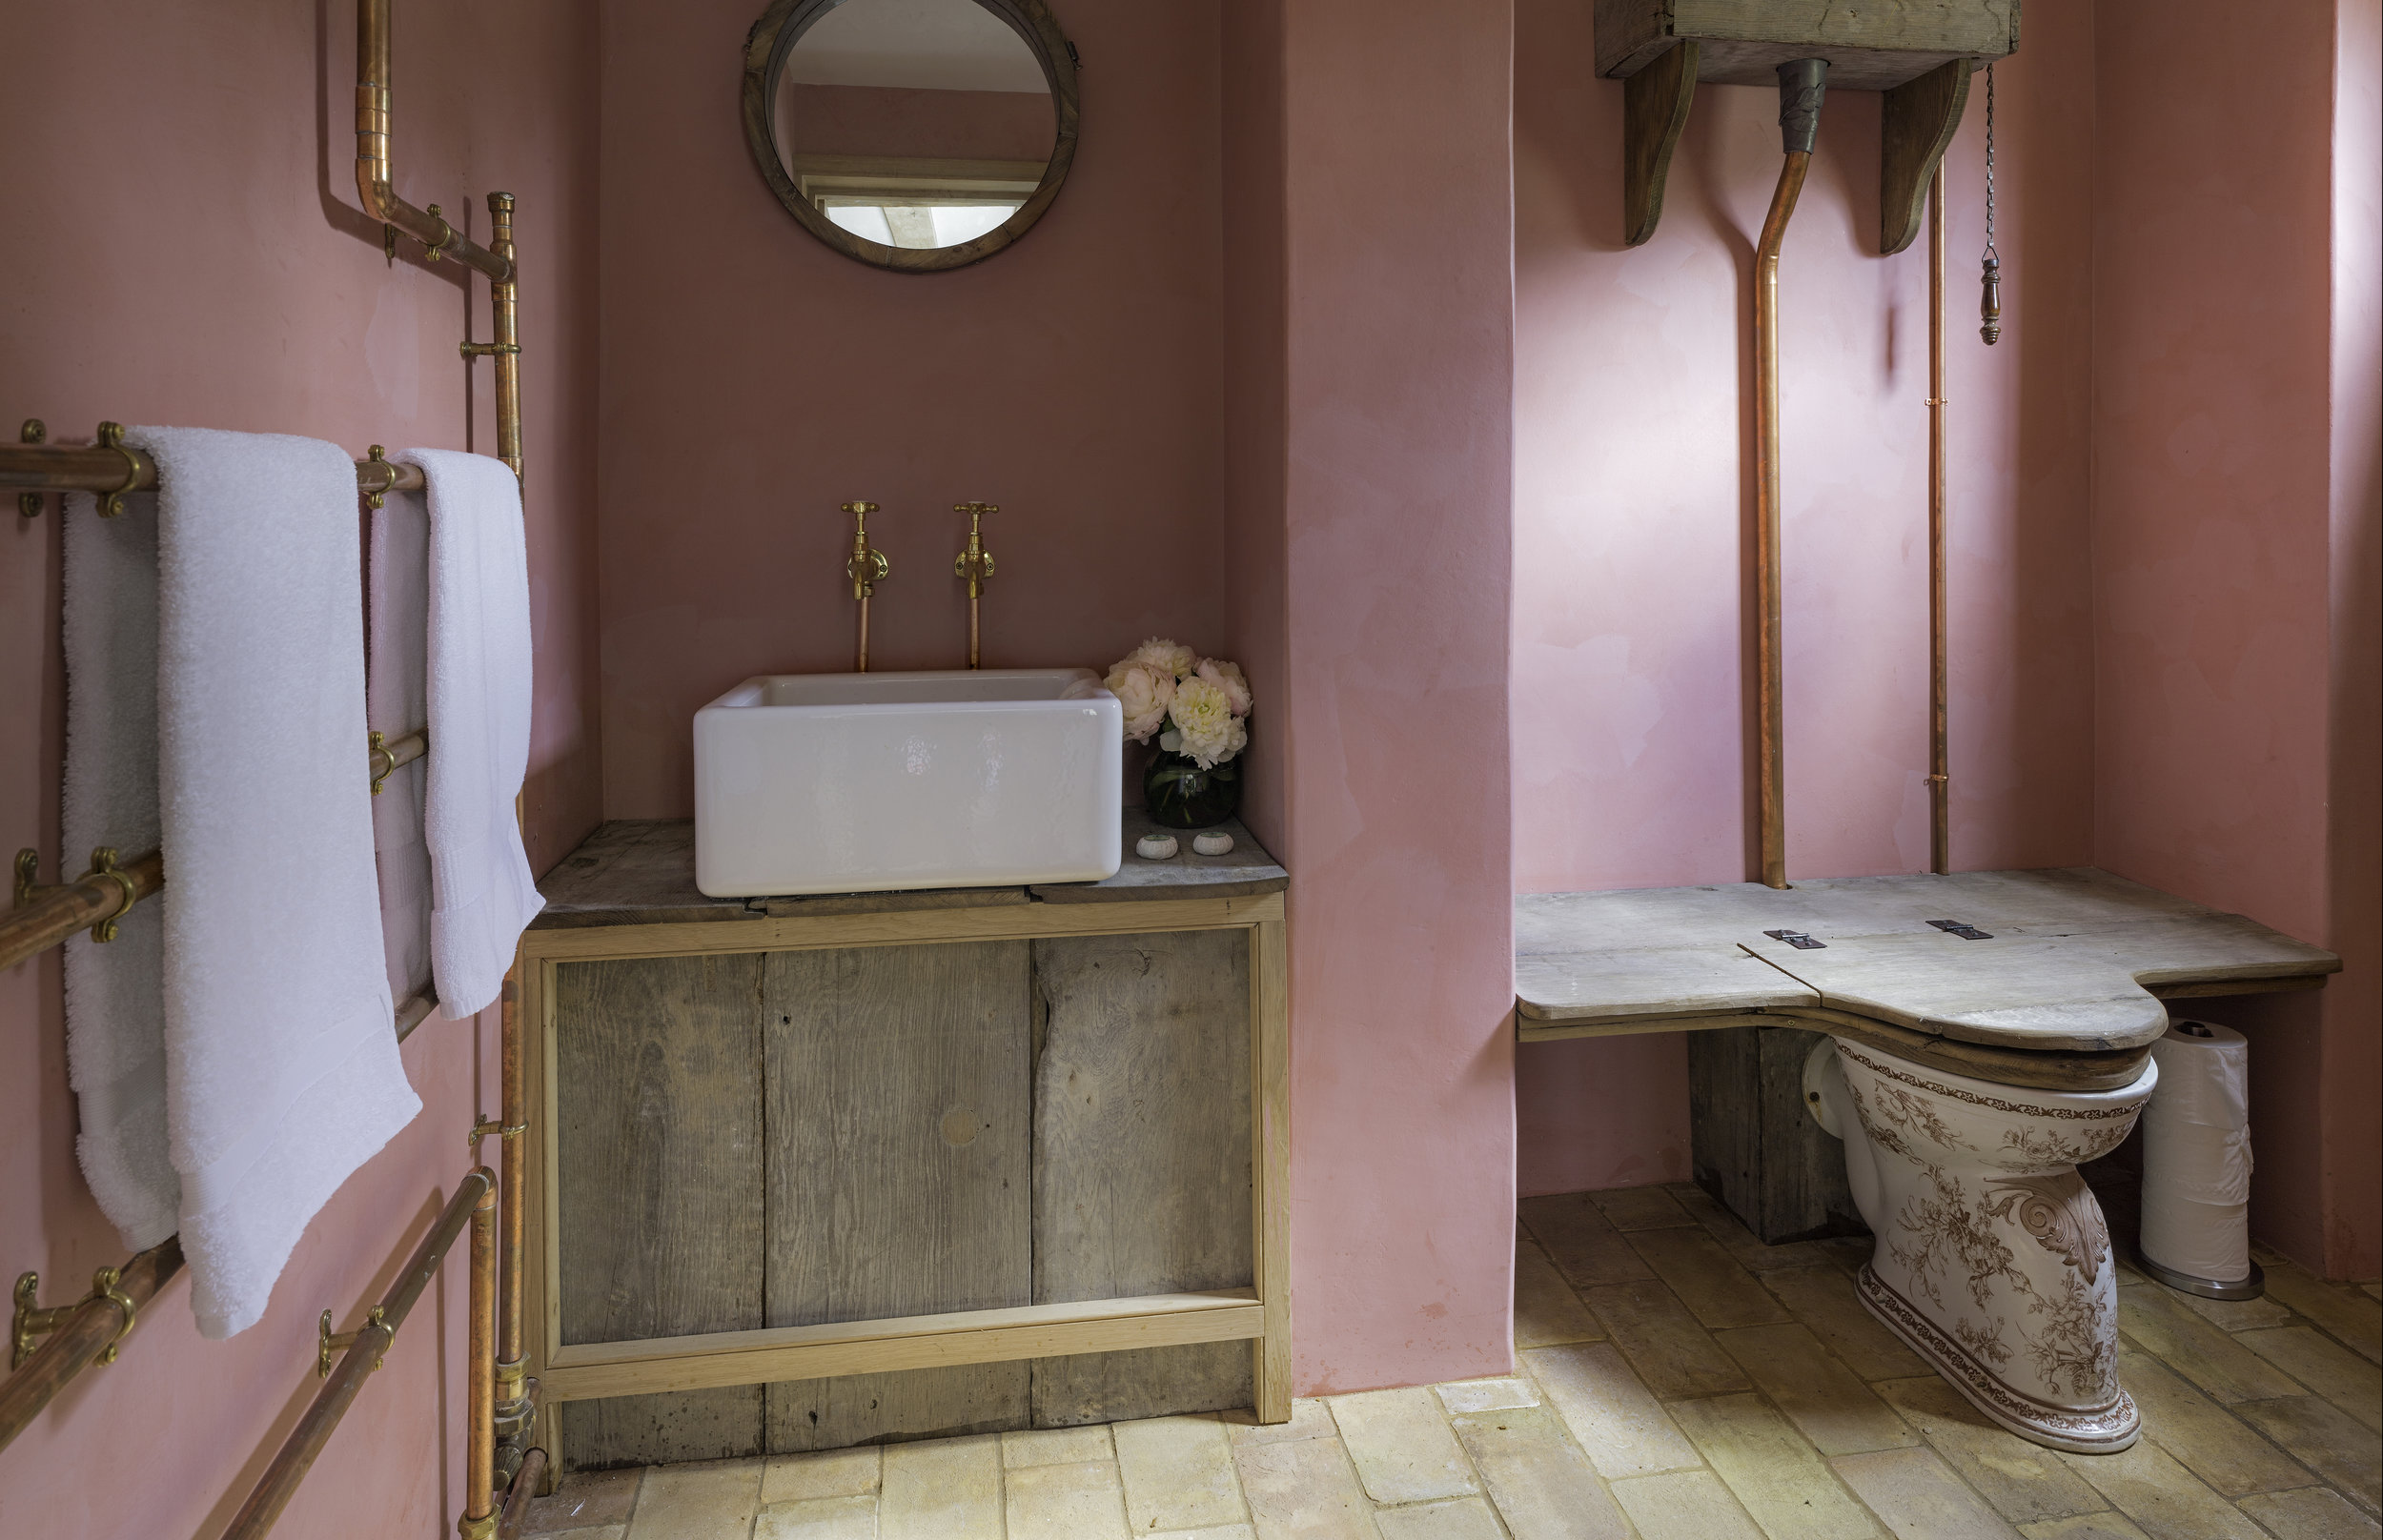 Pink, weathered wood and copper pipes combine in the Farmhouse bathroom